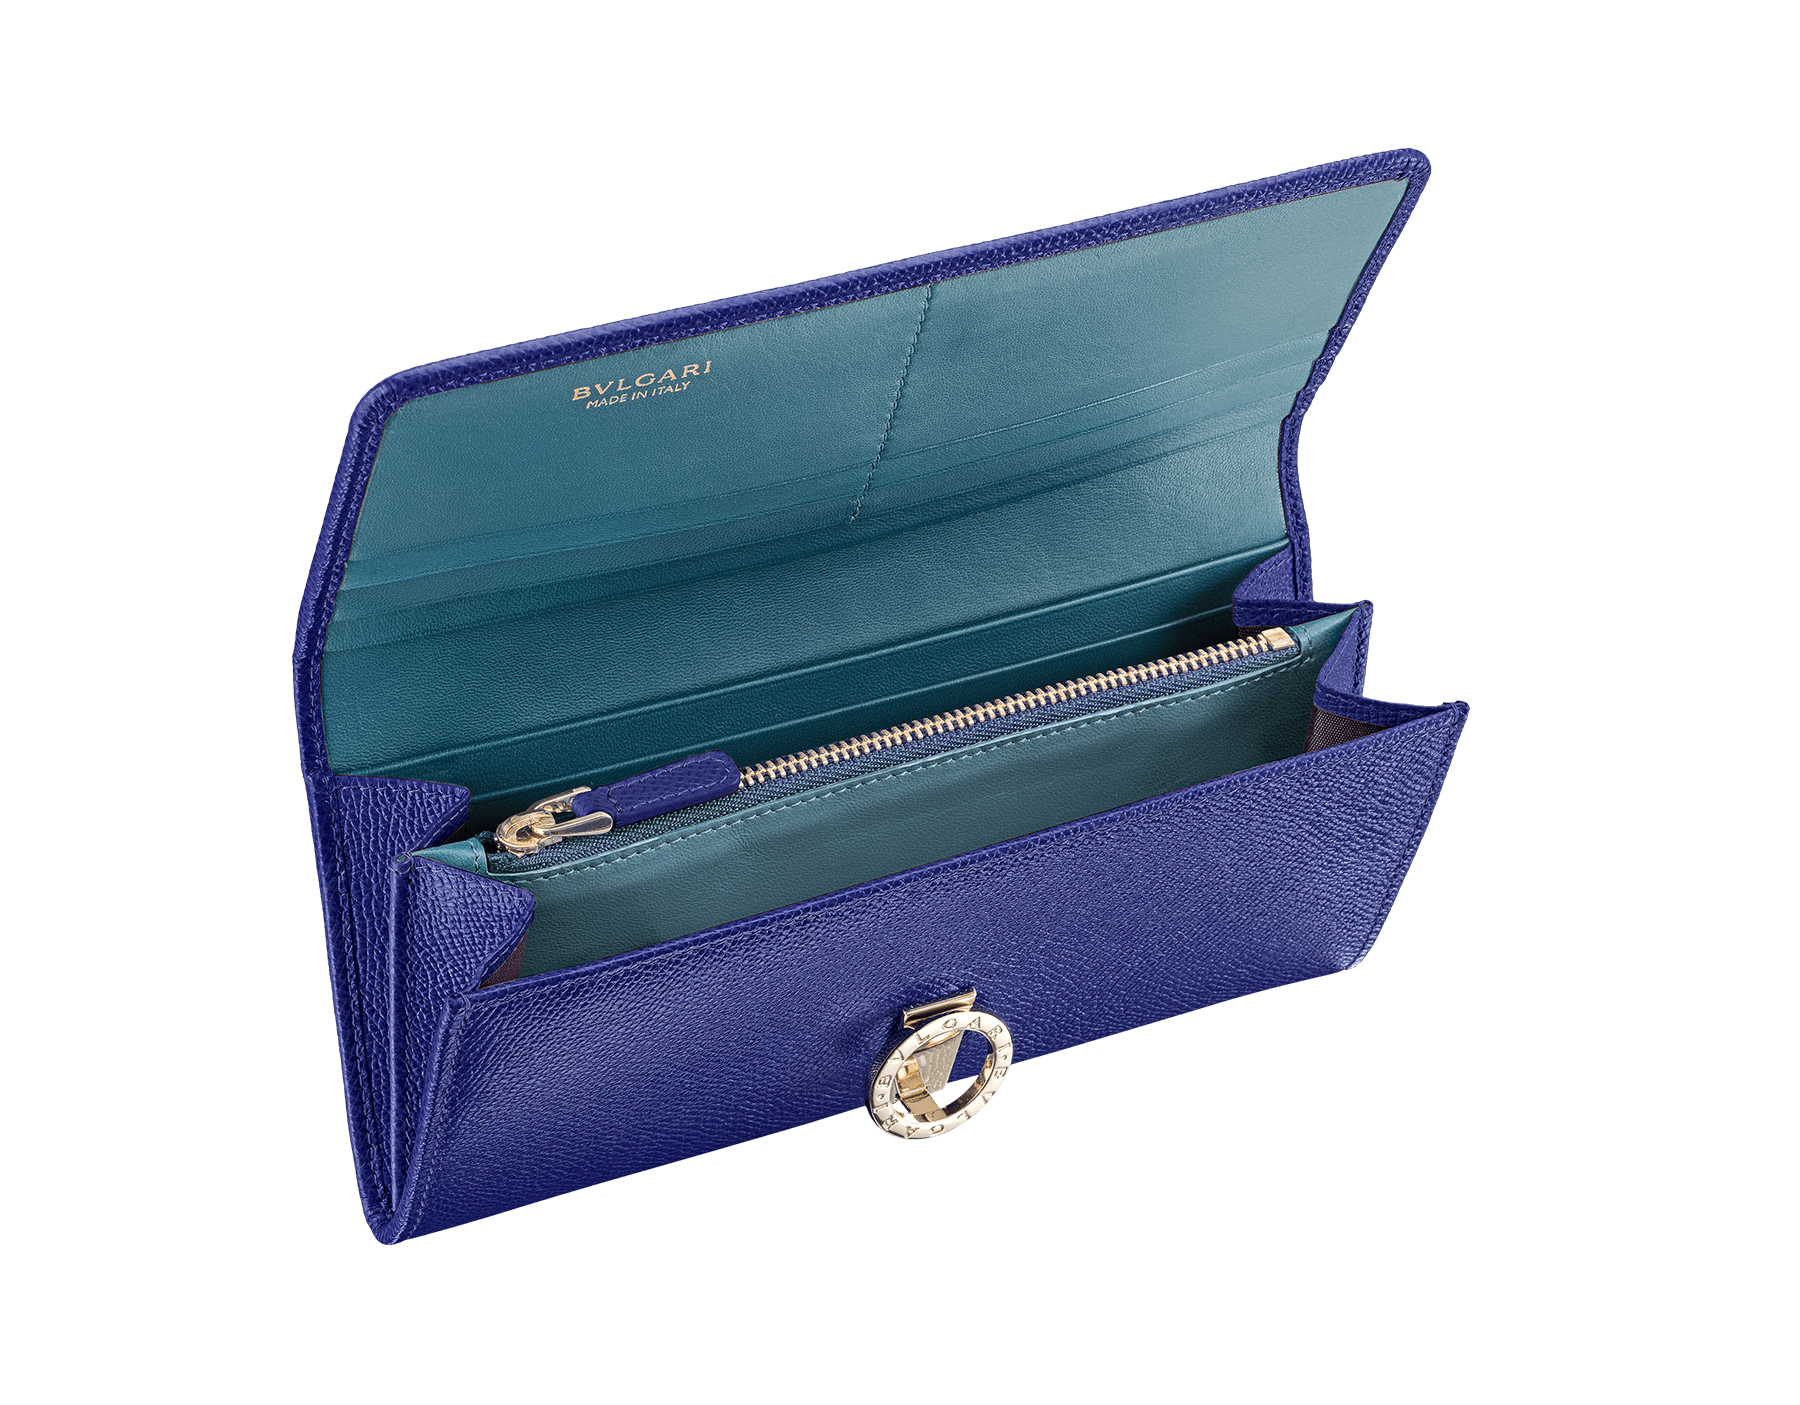 Wallet pochette in royal sapphire bright grain calf leather and teal topaz nappa with plum amethyst nappa lining. Brass light gold plated hardware and iconic BVLGARI BVLGARI closure clip. Nine credit card slots, two bill compartments, one zipped coin case. Also available in other colours. 19 x 9 cm. - 7.5 x 3.5 281443 image 2